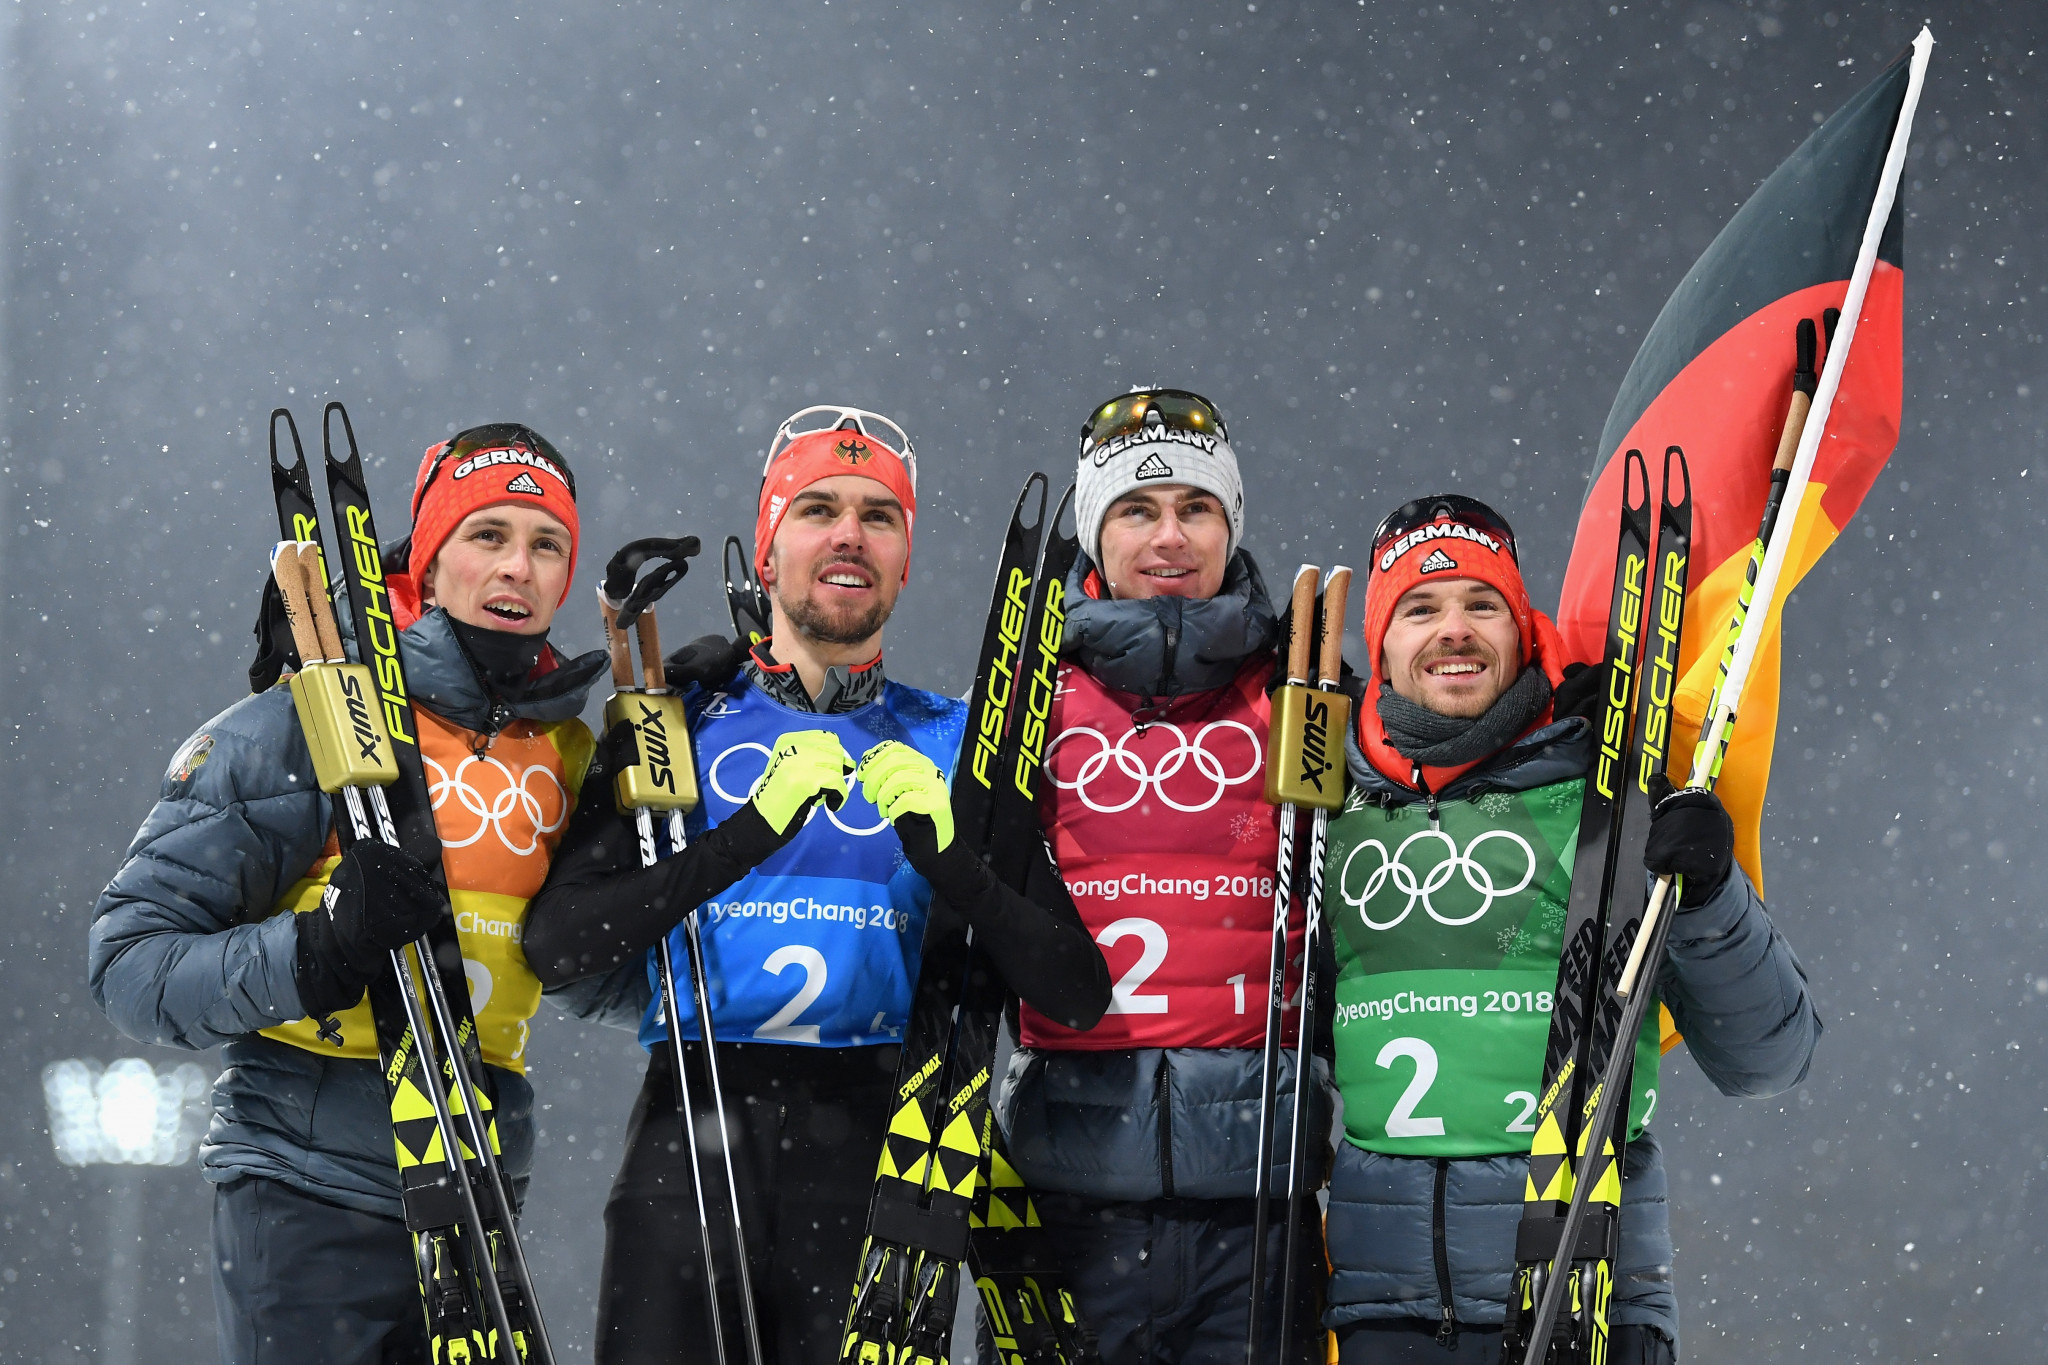 Germany ease to victory in team event as Nordic combined action at Pyeongchang 2018 concludes